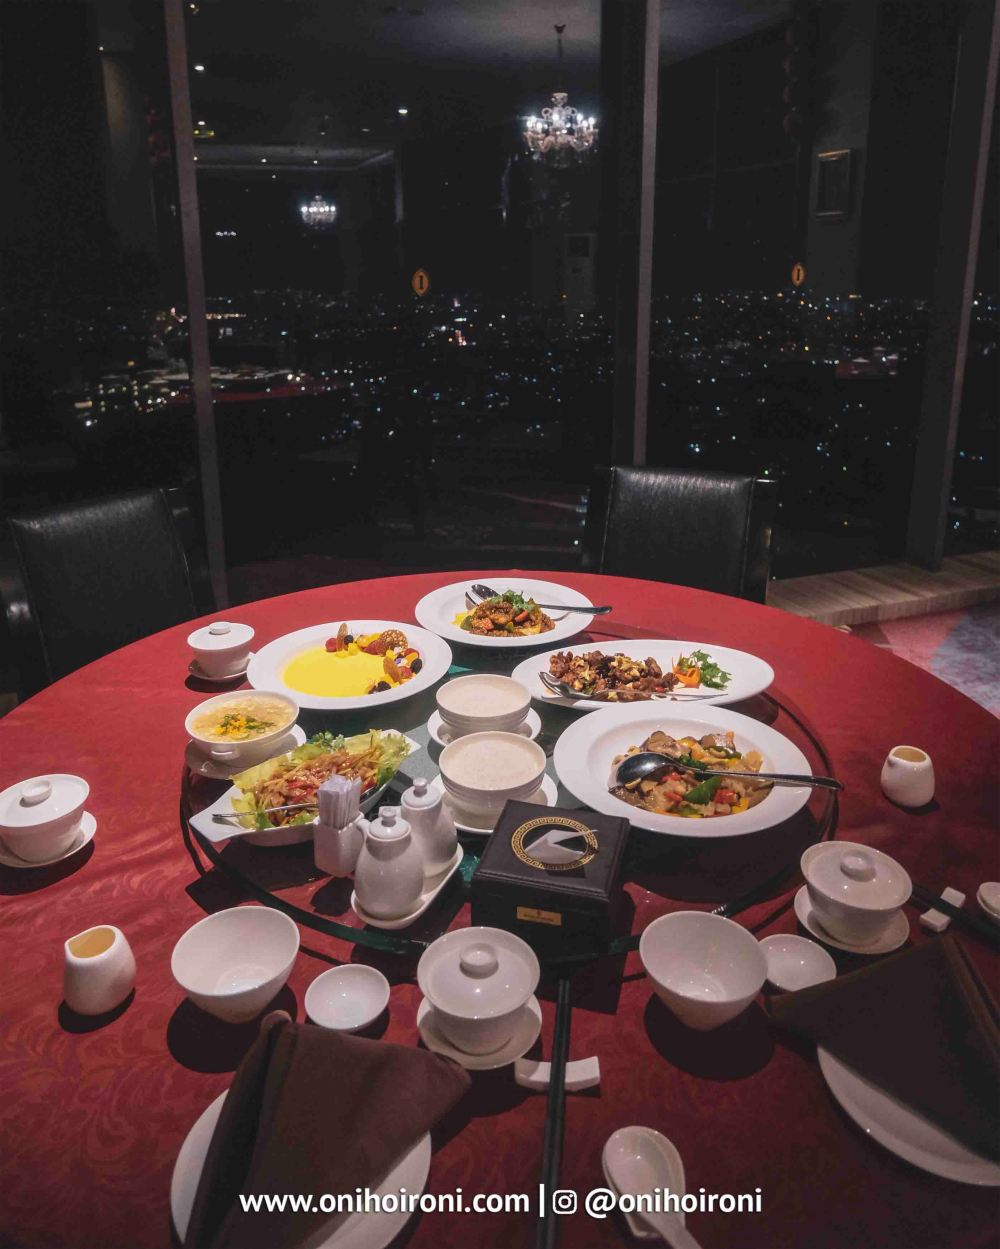 1 Food Tian Jing Lou Intercontinental Bandung Oni Hoironi